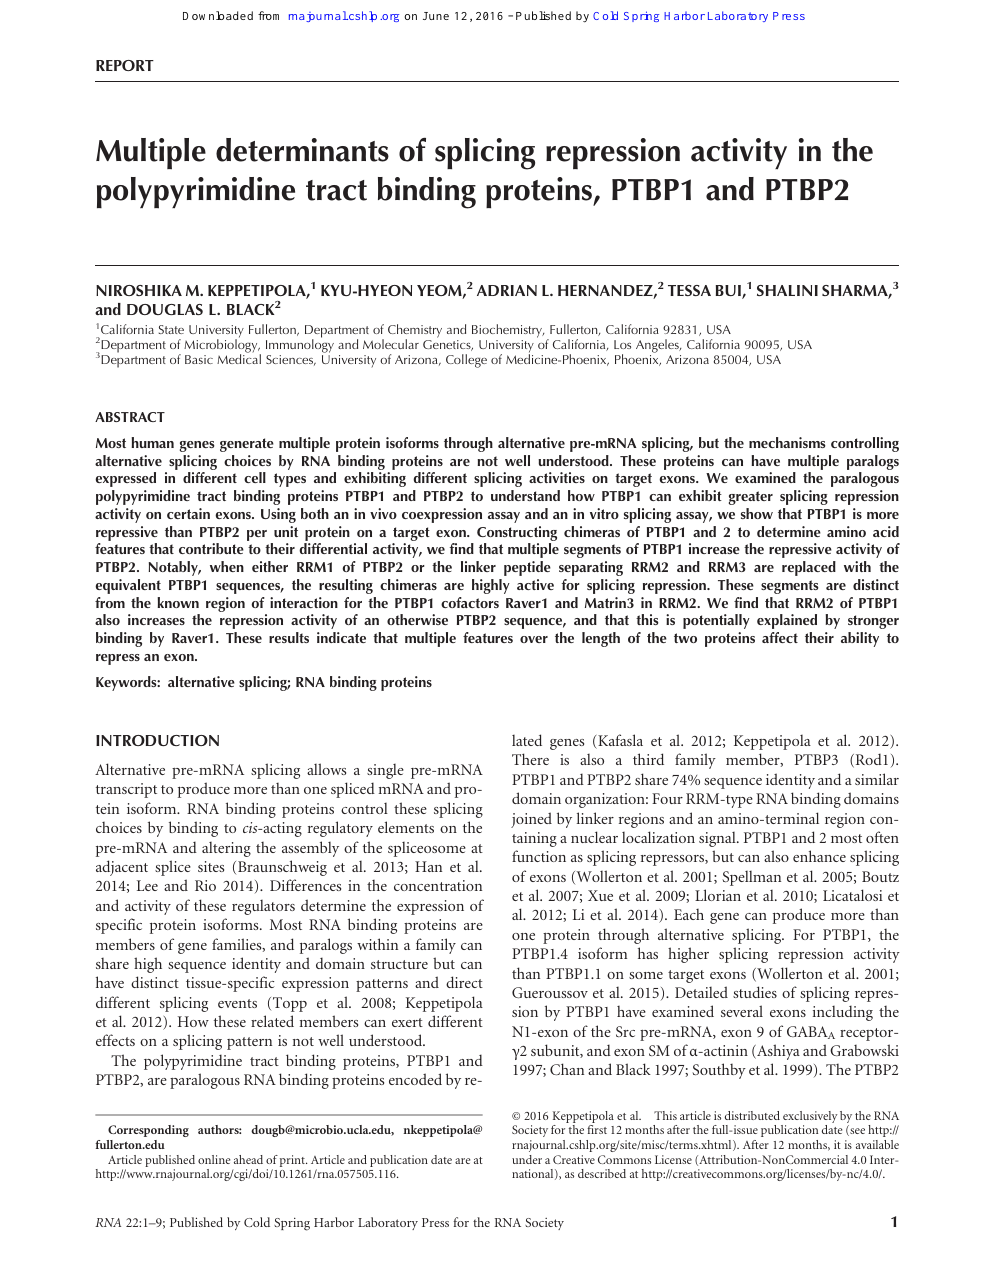 Multiple determinants of splicing repression activity in the